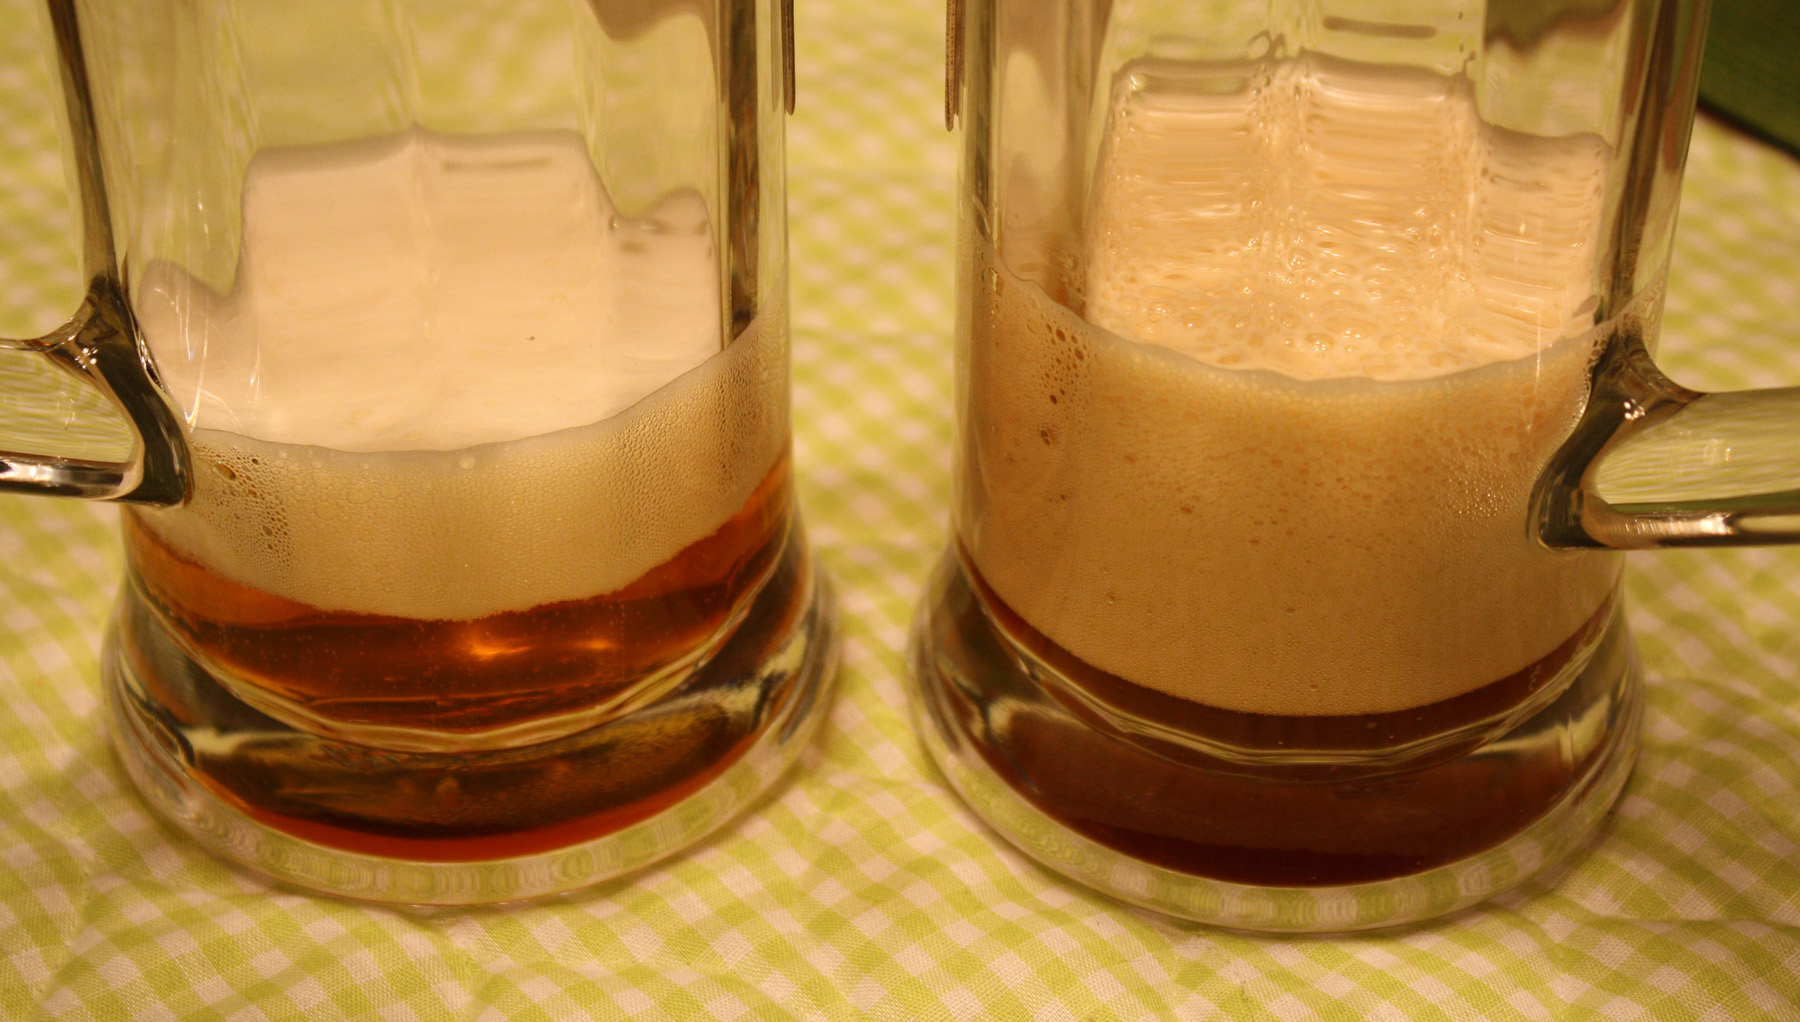 L to R:  Wild Willy's Wheat and Bear Spit.  If you click to enlarge, and then enlarge even a second time, you can see the carbonation bubbles in the Wild Willy's Wheat.  I realize the color isn't exactly the best in this photo, but you can get the idea that Bear Spit is much darker than Wild Willy's Wheat.